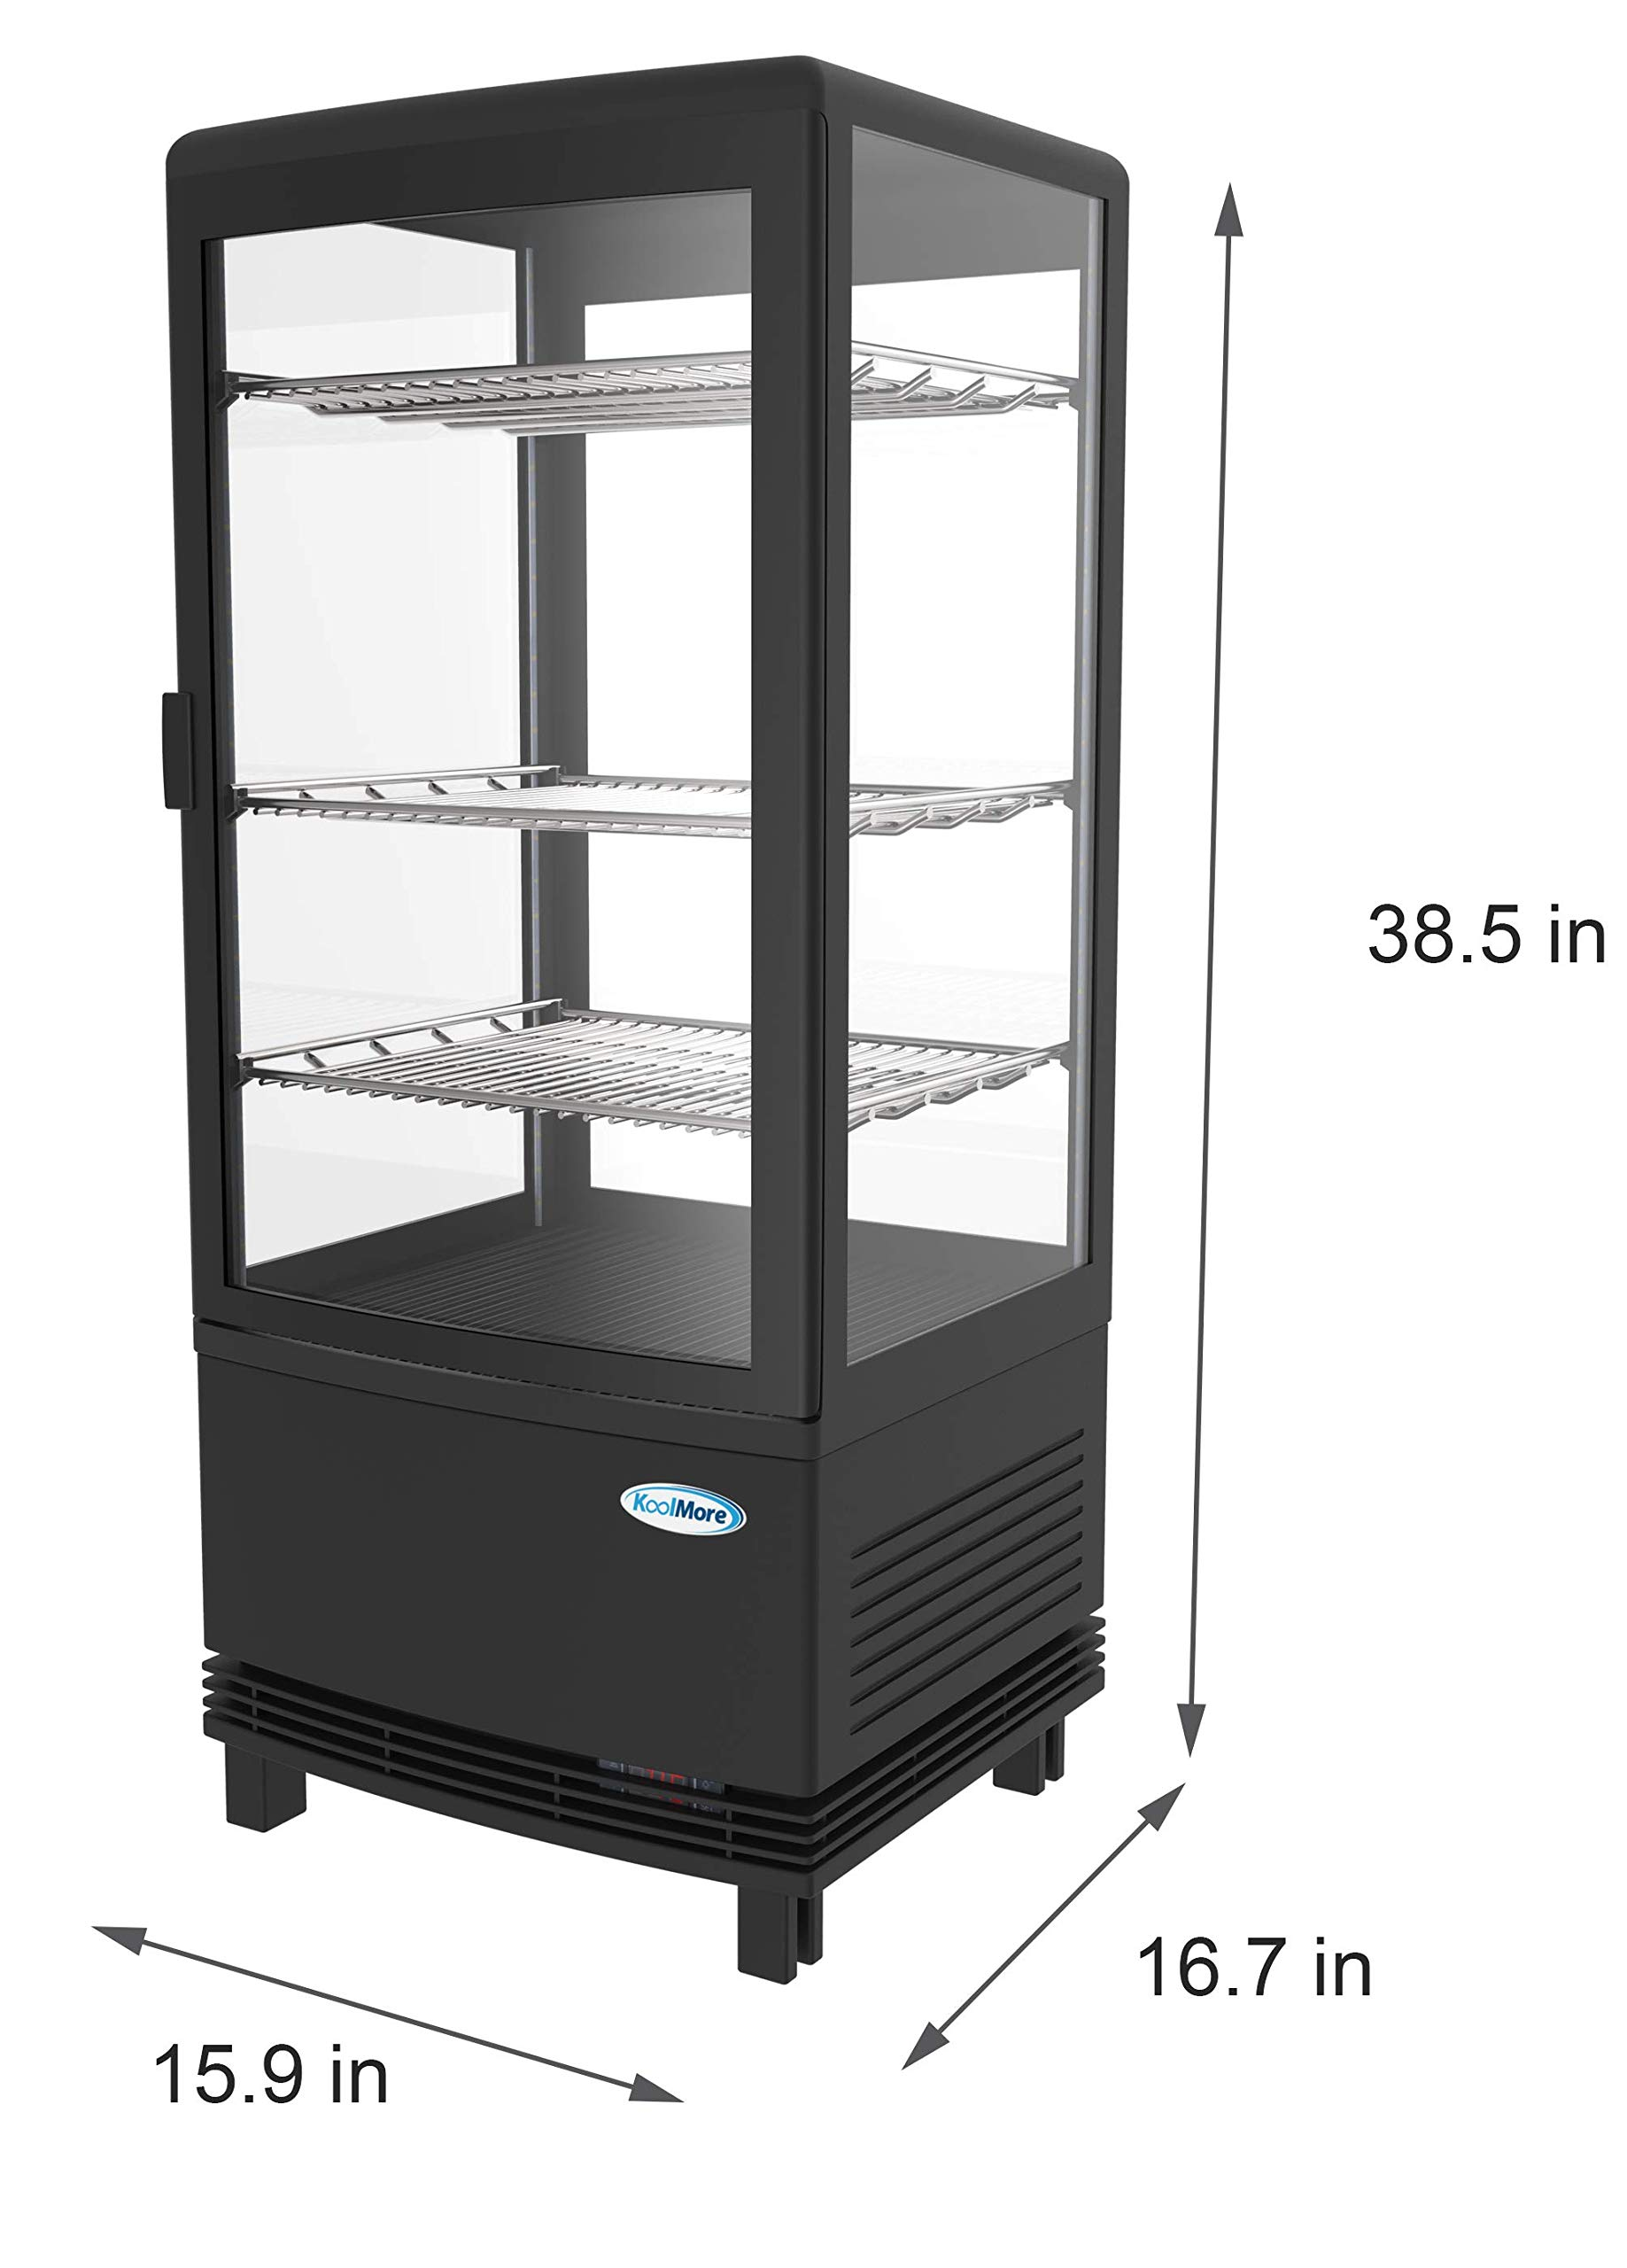 KoolMore Countertop Refrigerator Display Case Commercial Beverage Cooler with LED Lighting - 3 cu. ft Capacity by KoolMore (Image #5)